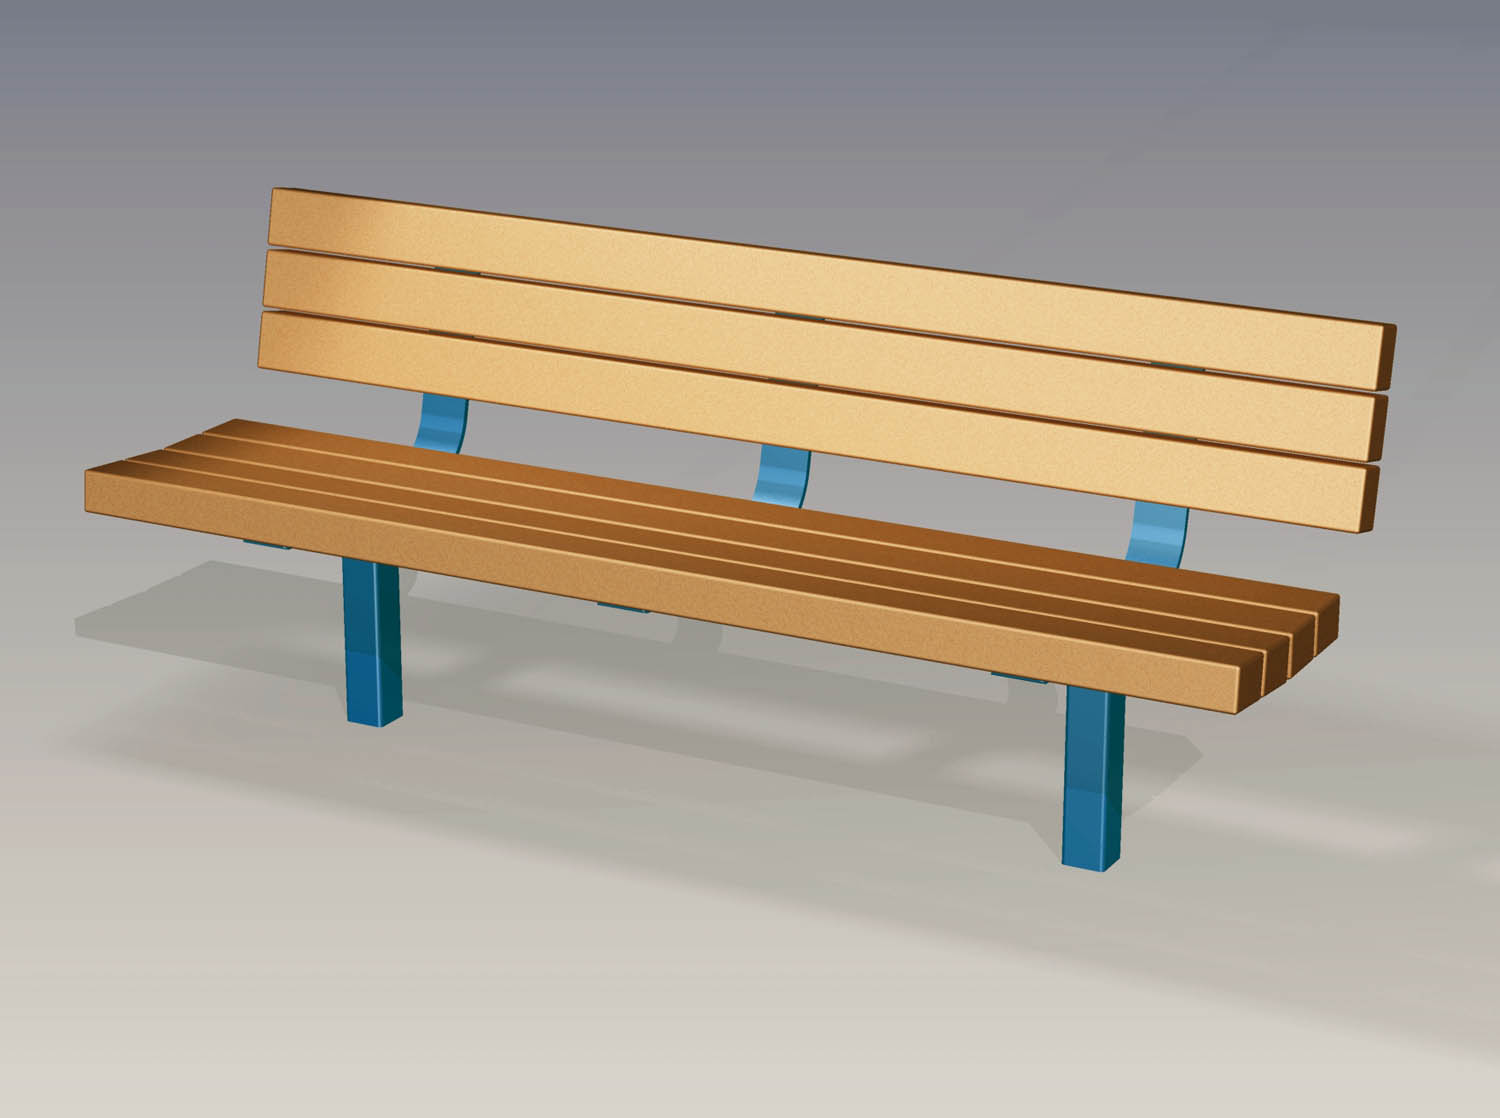 2017 6 Ada Accessible Bench Recycled Plastic Slats